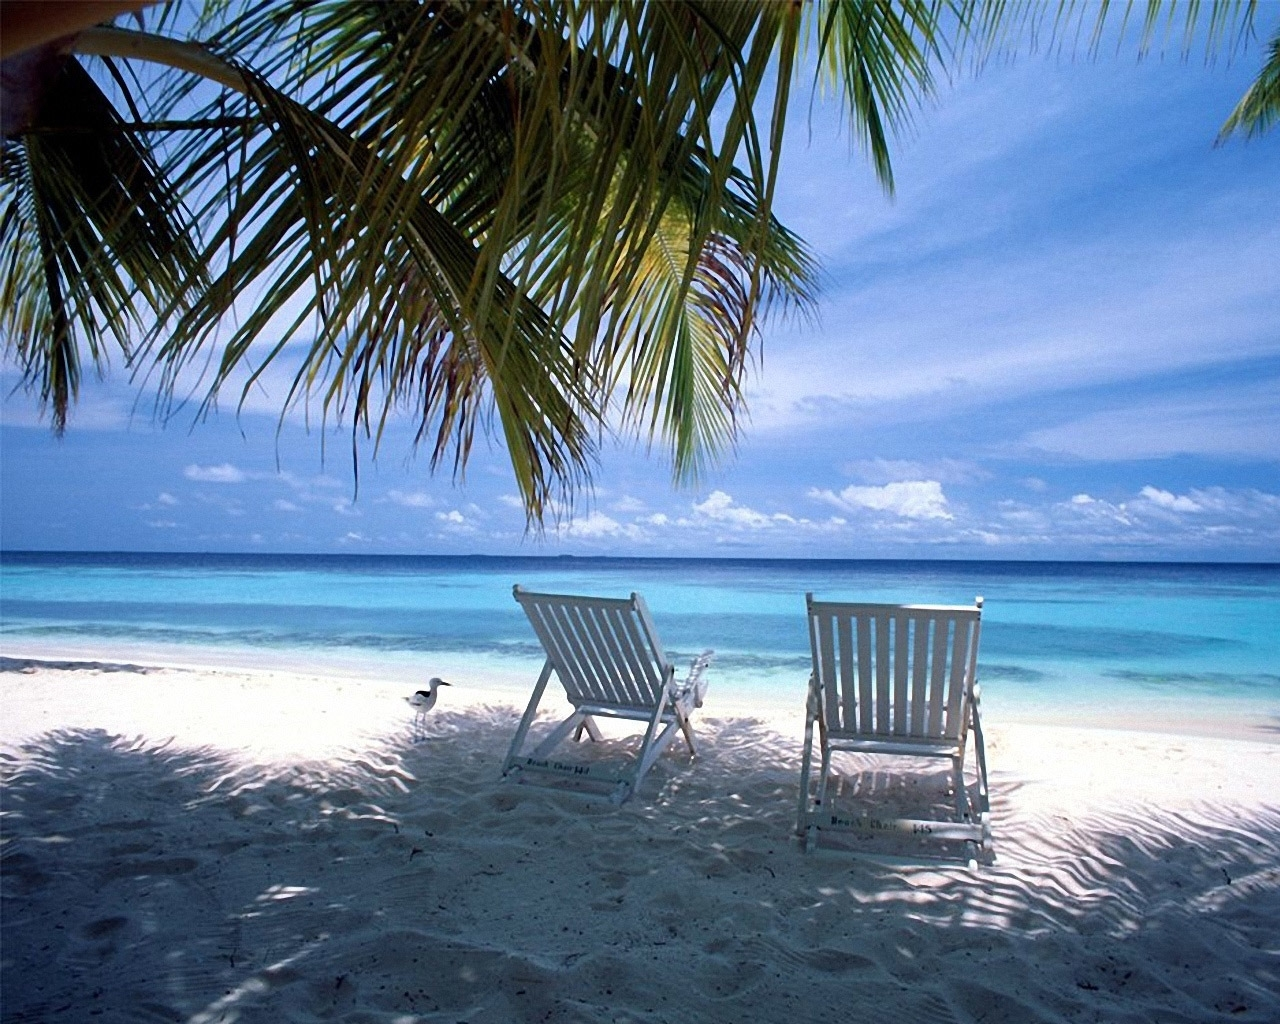 10 new caribbean beach pictures wallpaper full hd 1080p for pc